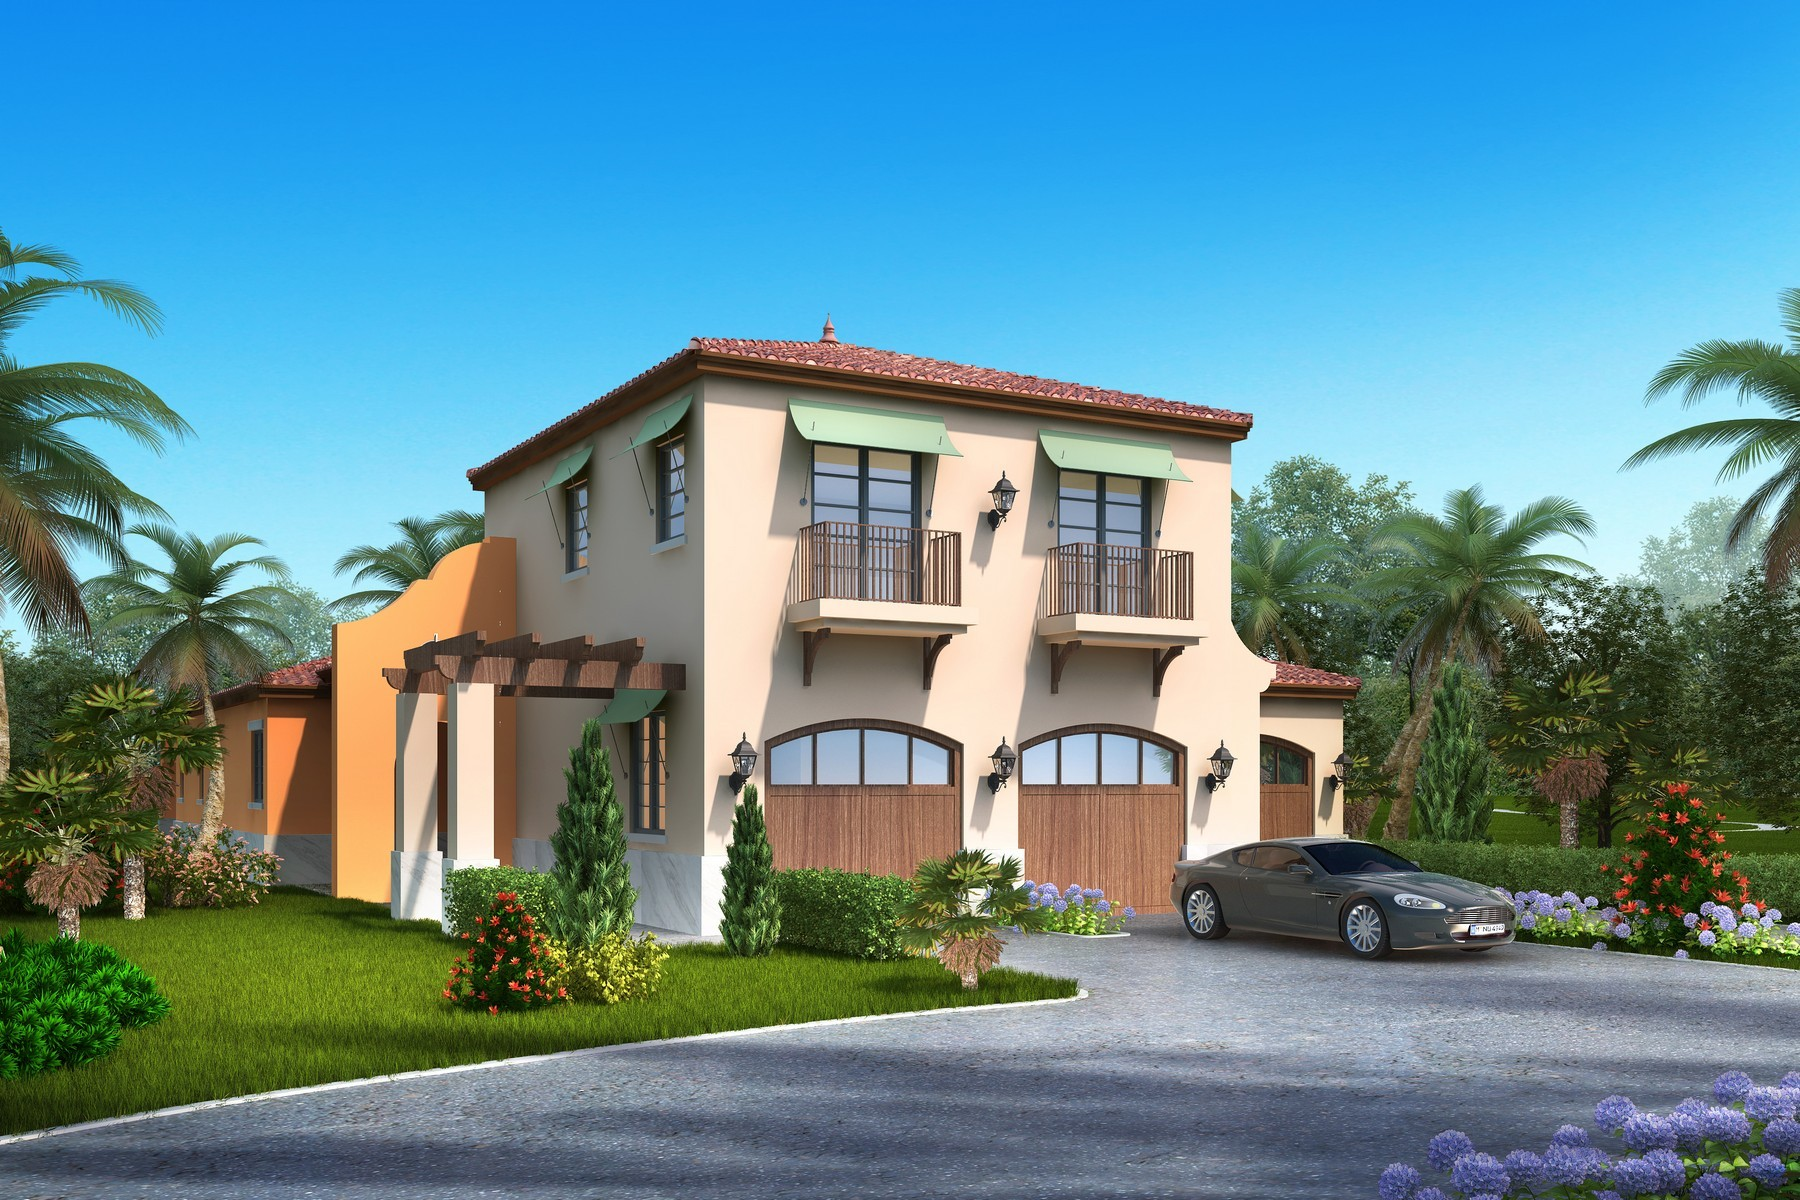 Single Family Home for Sale at To be Constructed Savvy Courtyard Home 180 Whaler Drive Melbourne Beach, Florida, 32951 United States